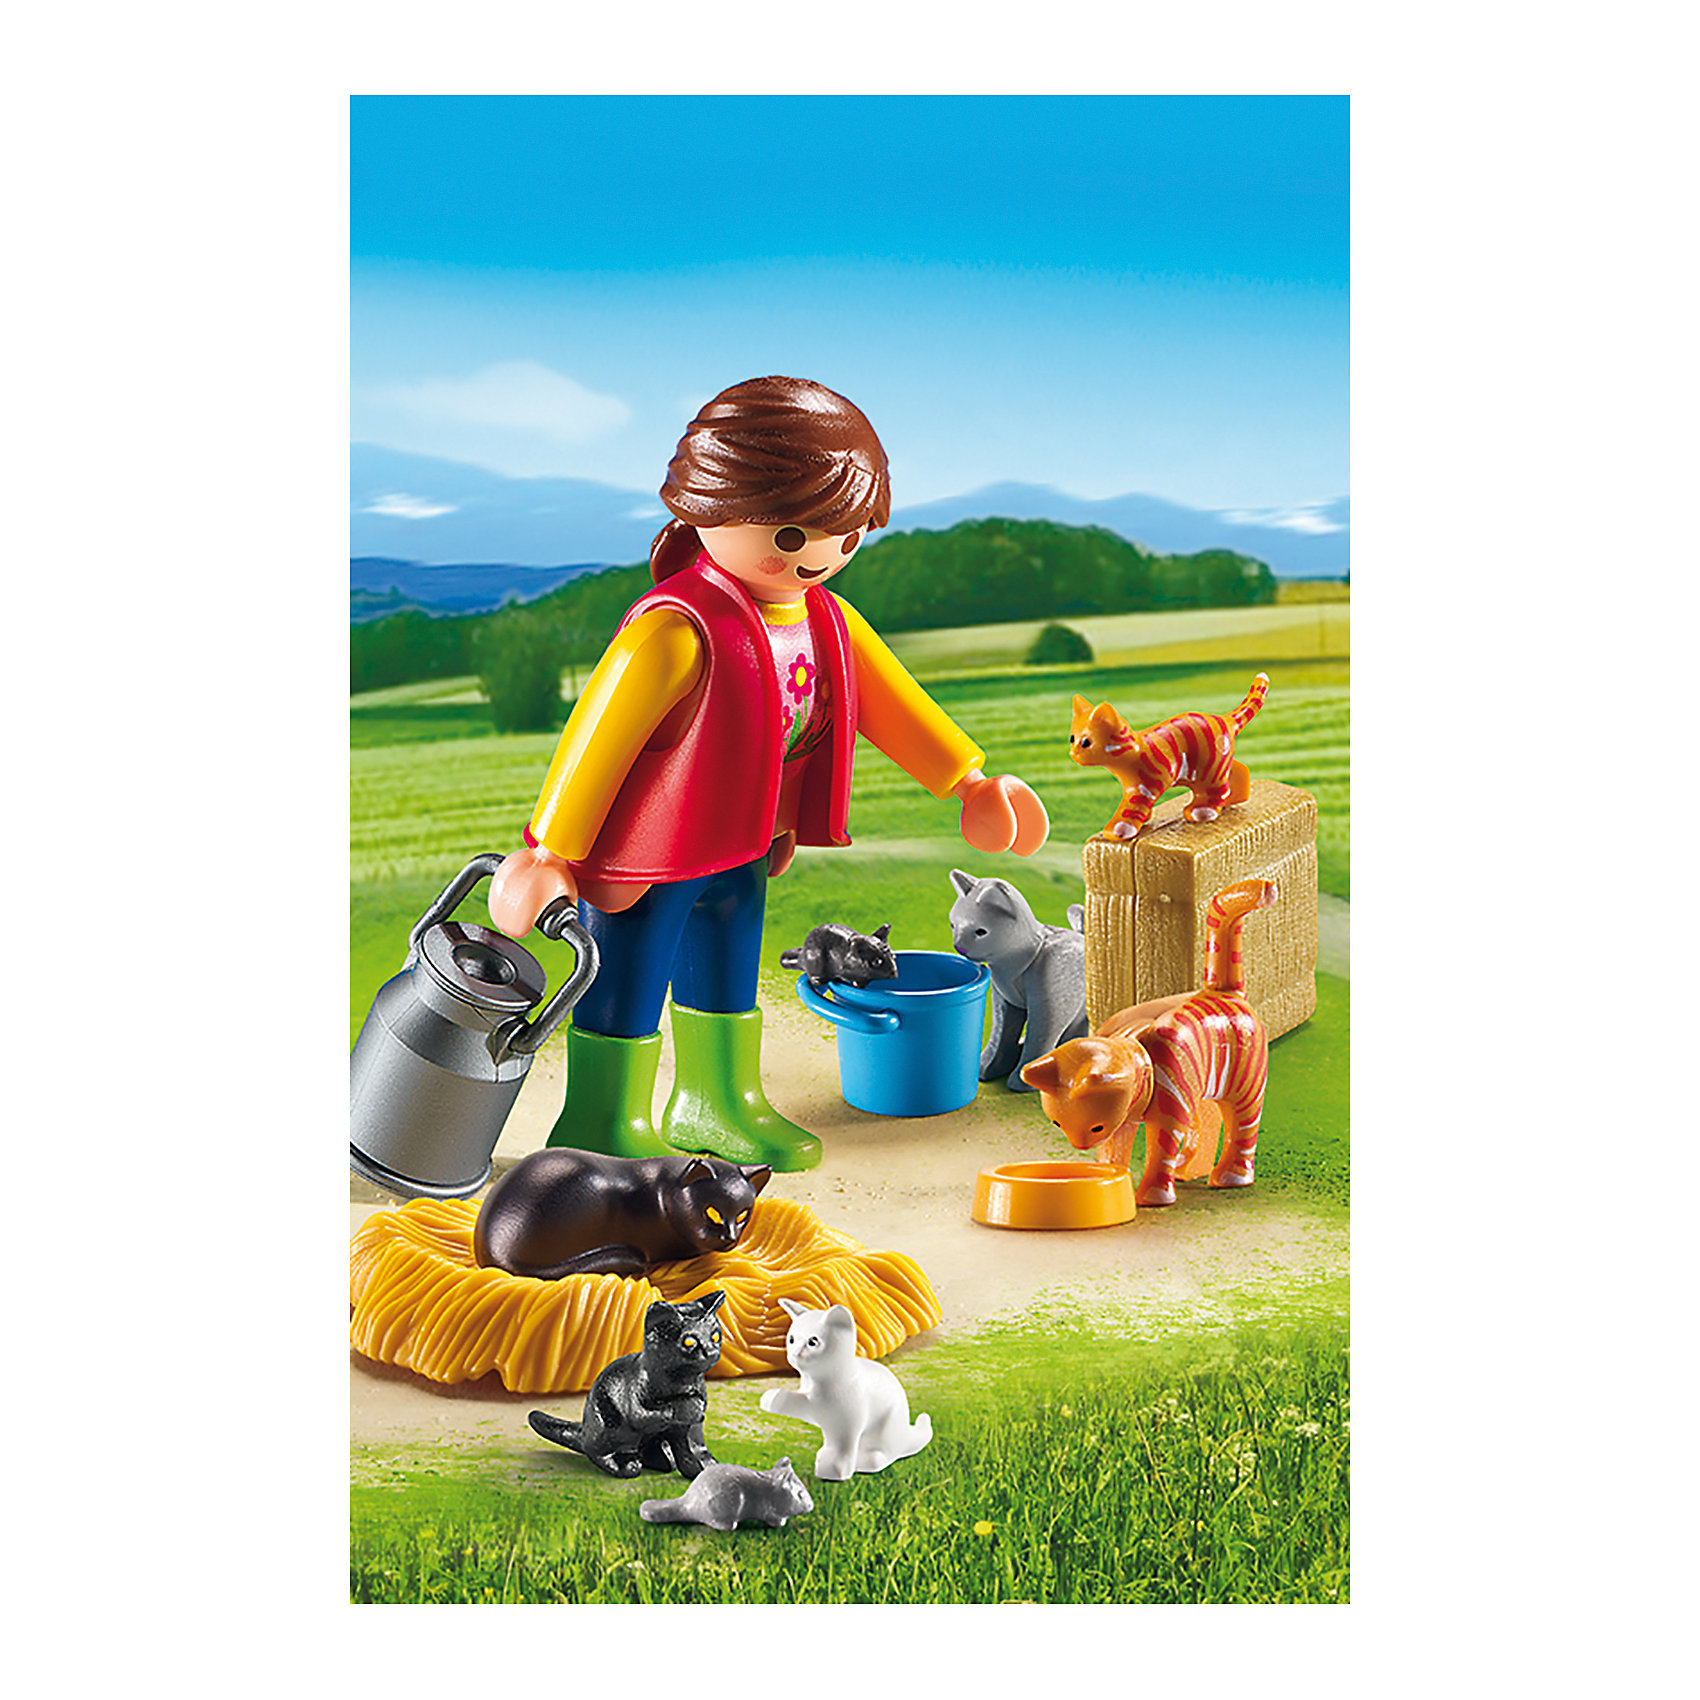 PLAYMOBIL® Ферма: Женщина с семейством кошек, PLAYMOBIL torx shape dn50 heating elements for soup bucket pot cinquefoil type 2 thread electric heat tube for cooker